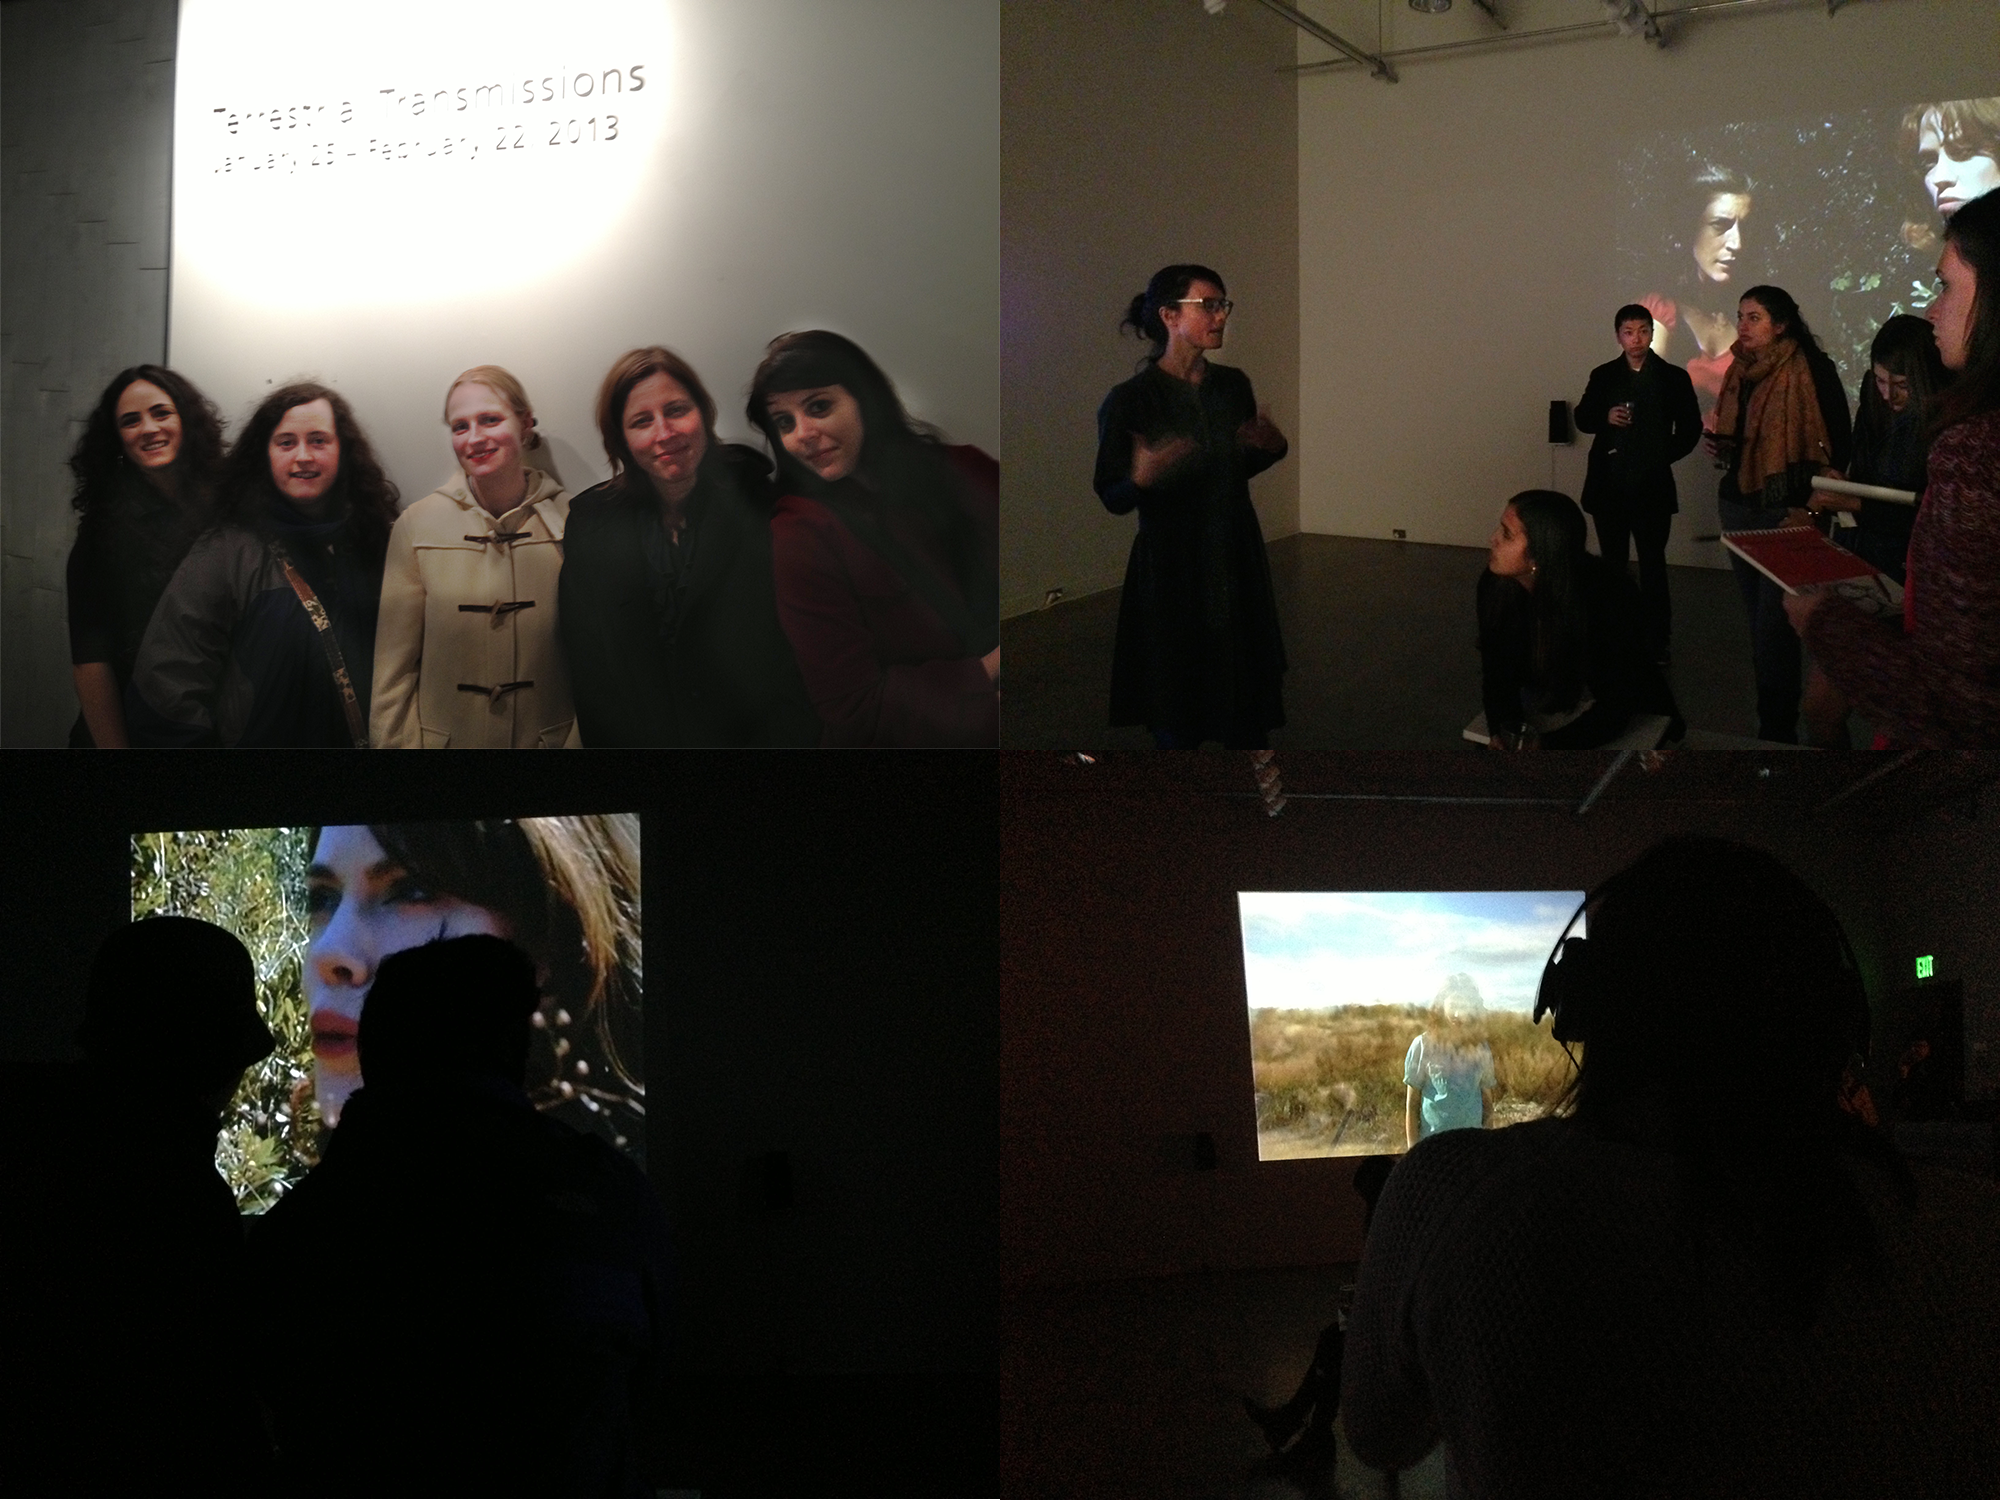 Collage of images from the Terrestrial Transmission Show UVA